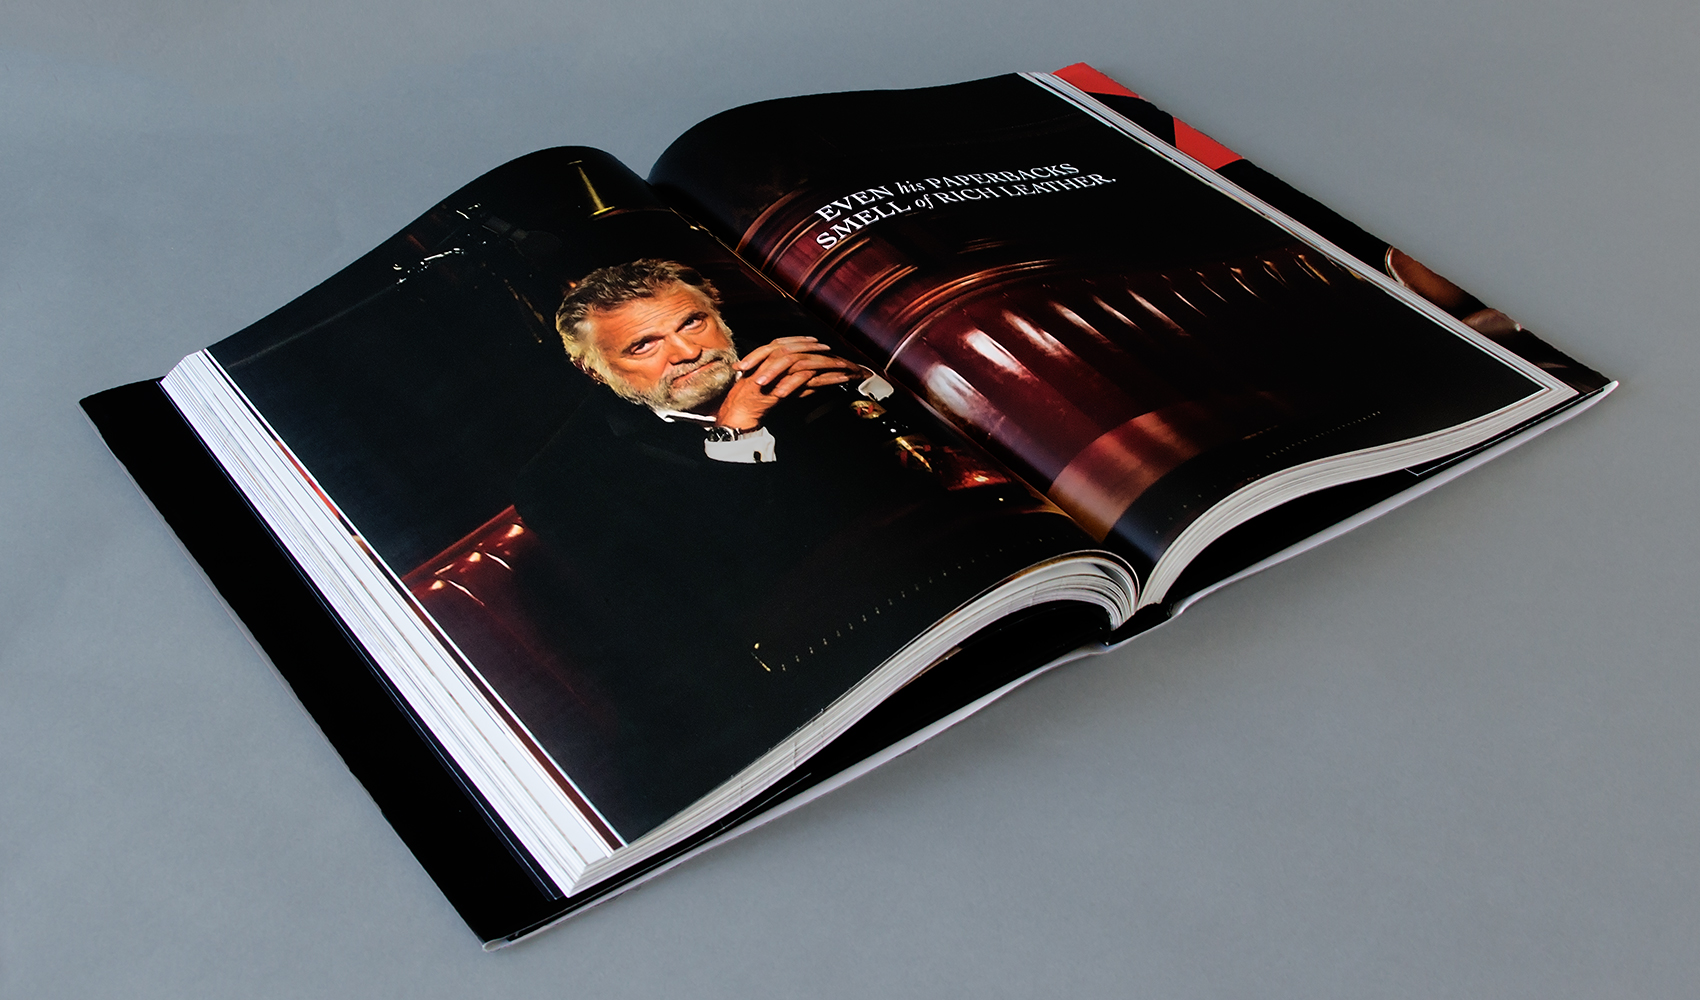 Vanguard - Art Production & Printing for Dos Equis